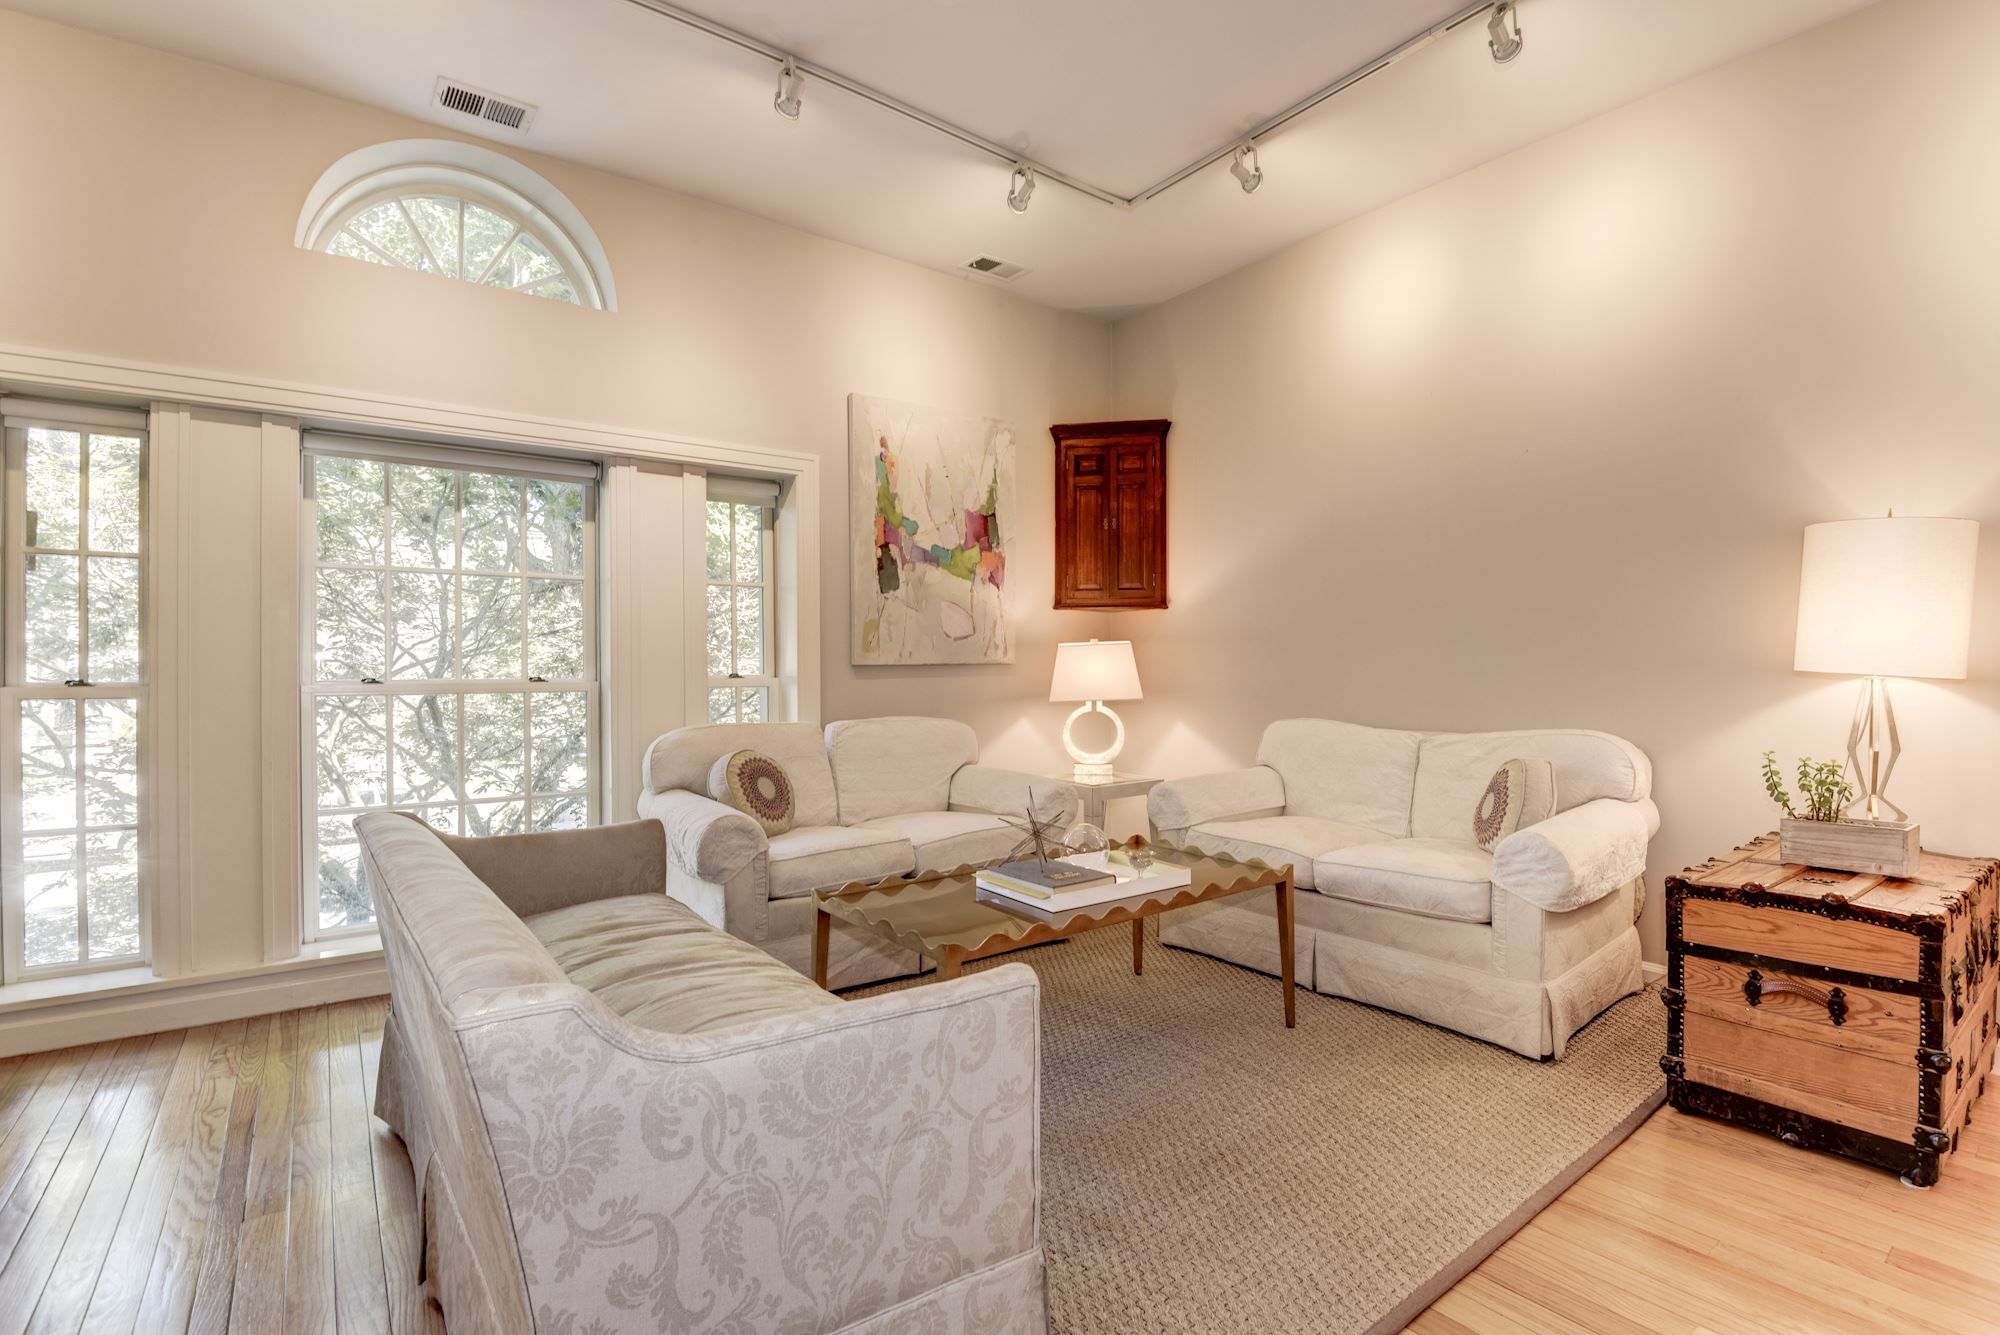 SOLD: 1 BD Stonesdale Condo in Great DC Location